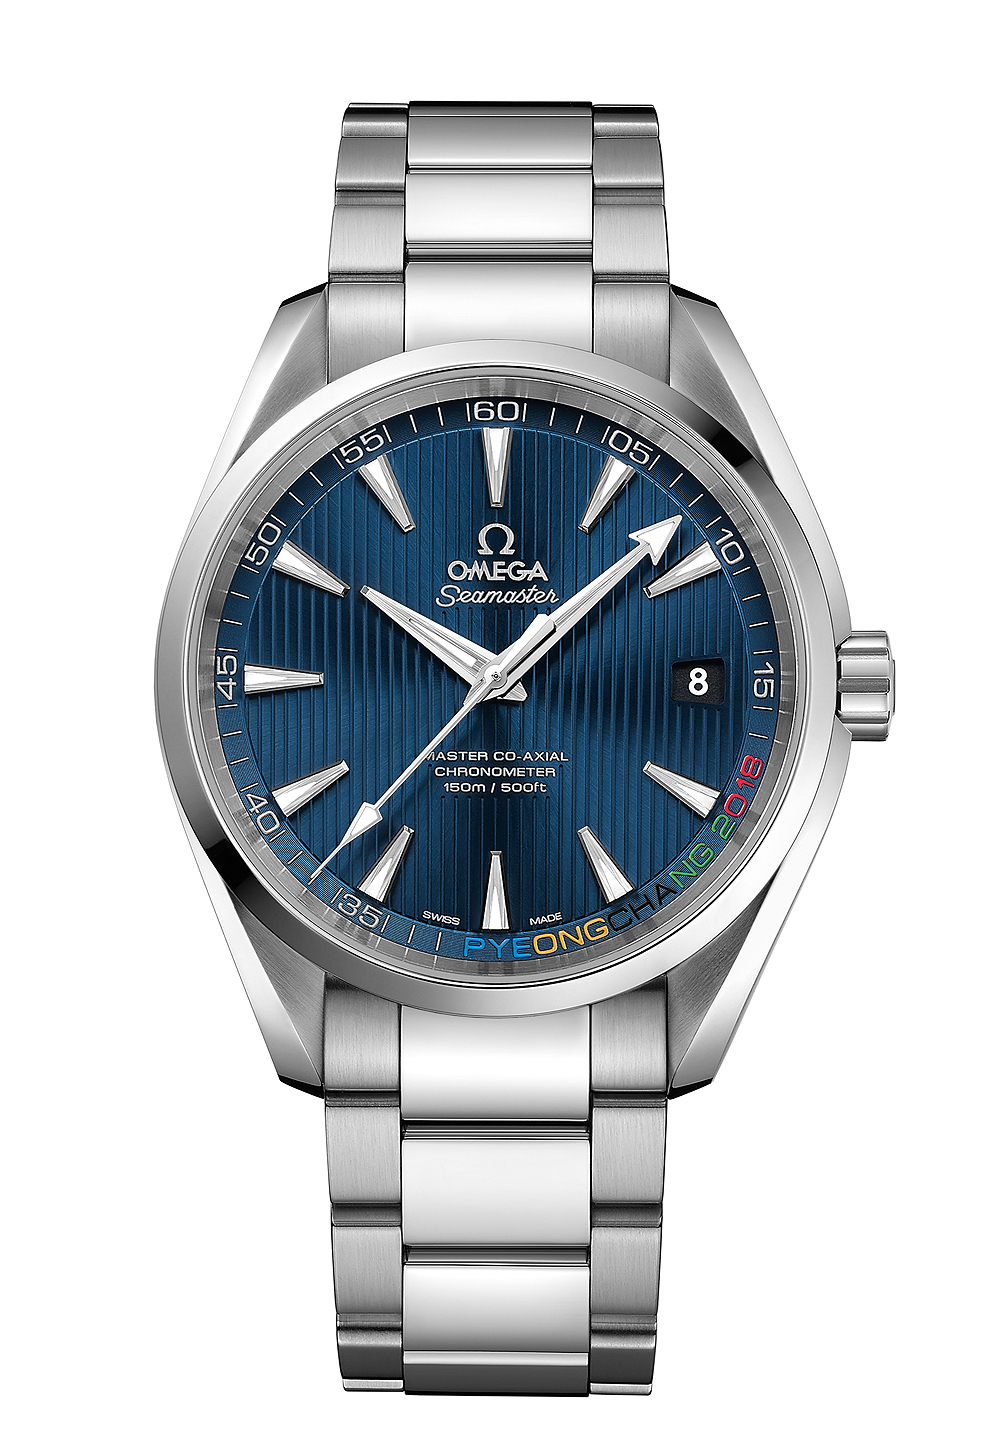 Already Missing The 2020 Olympics Here Are 5 Limited Edition Olympic Watches From Omega Omega Omega Seamaster Luxury Watches For Men